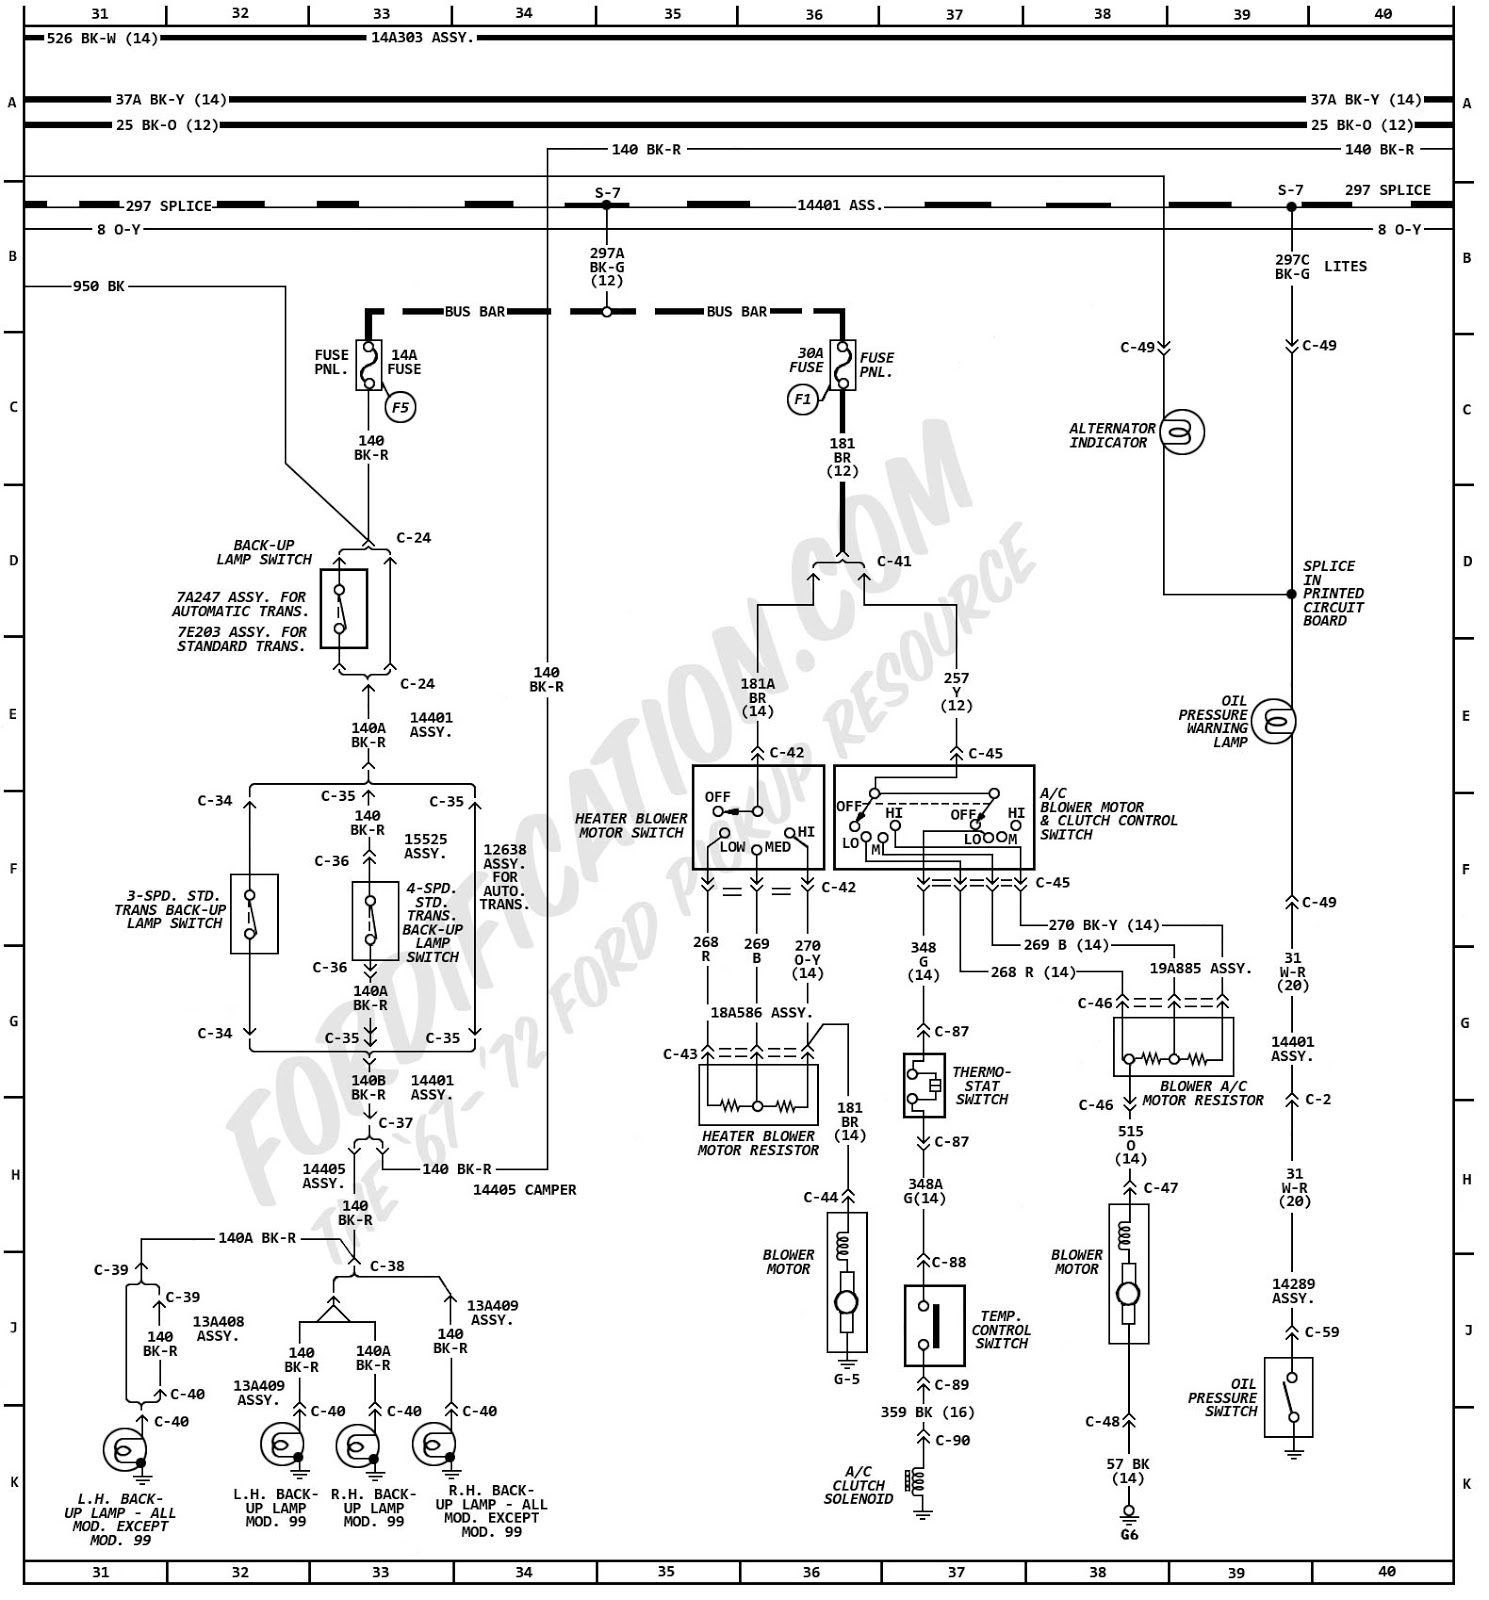 hight resolution of chevy radio wire harness stereo connect wiring chv 1858 ebay wiring diagram for 2005 chevy aveo on 1858 metra gm wire harness